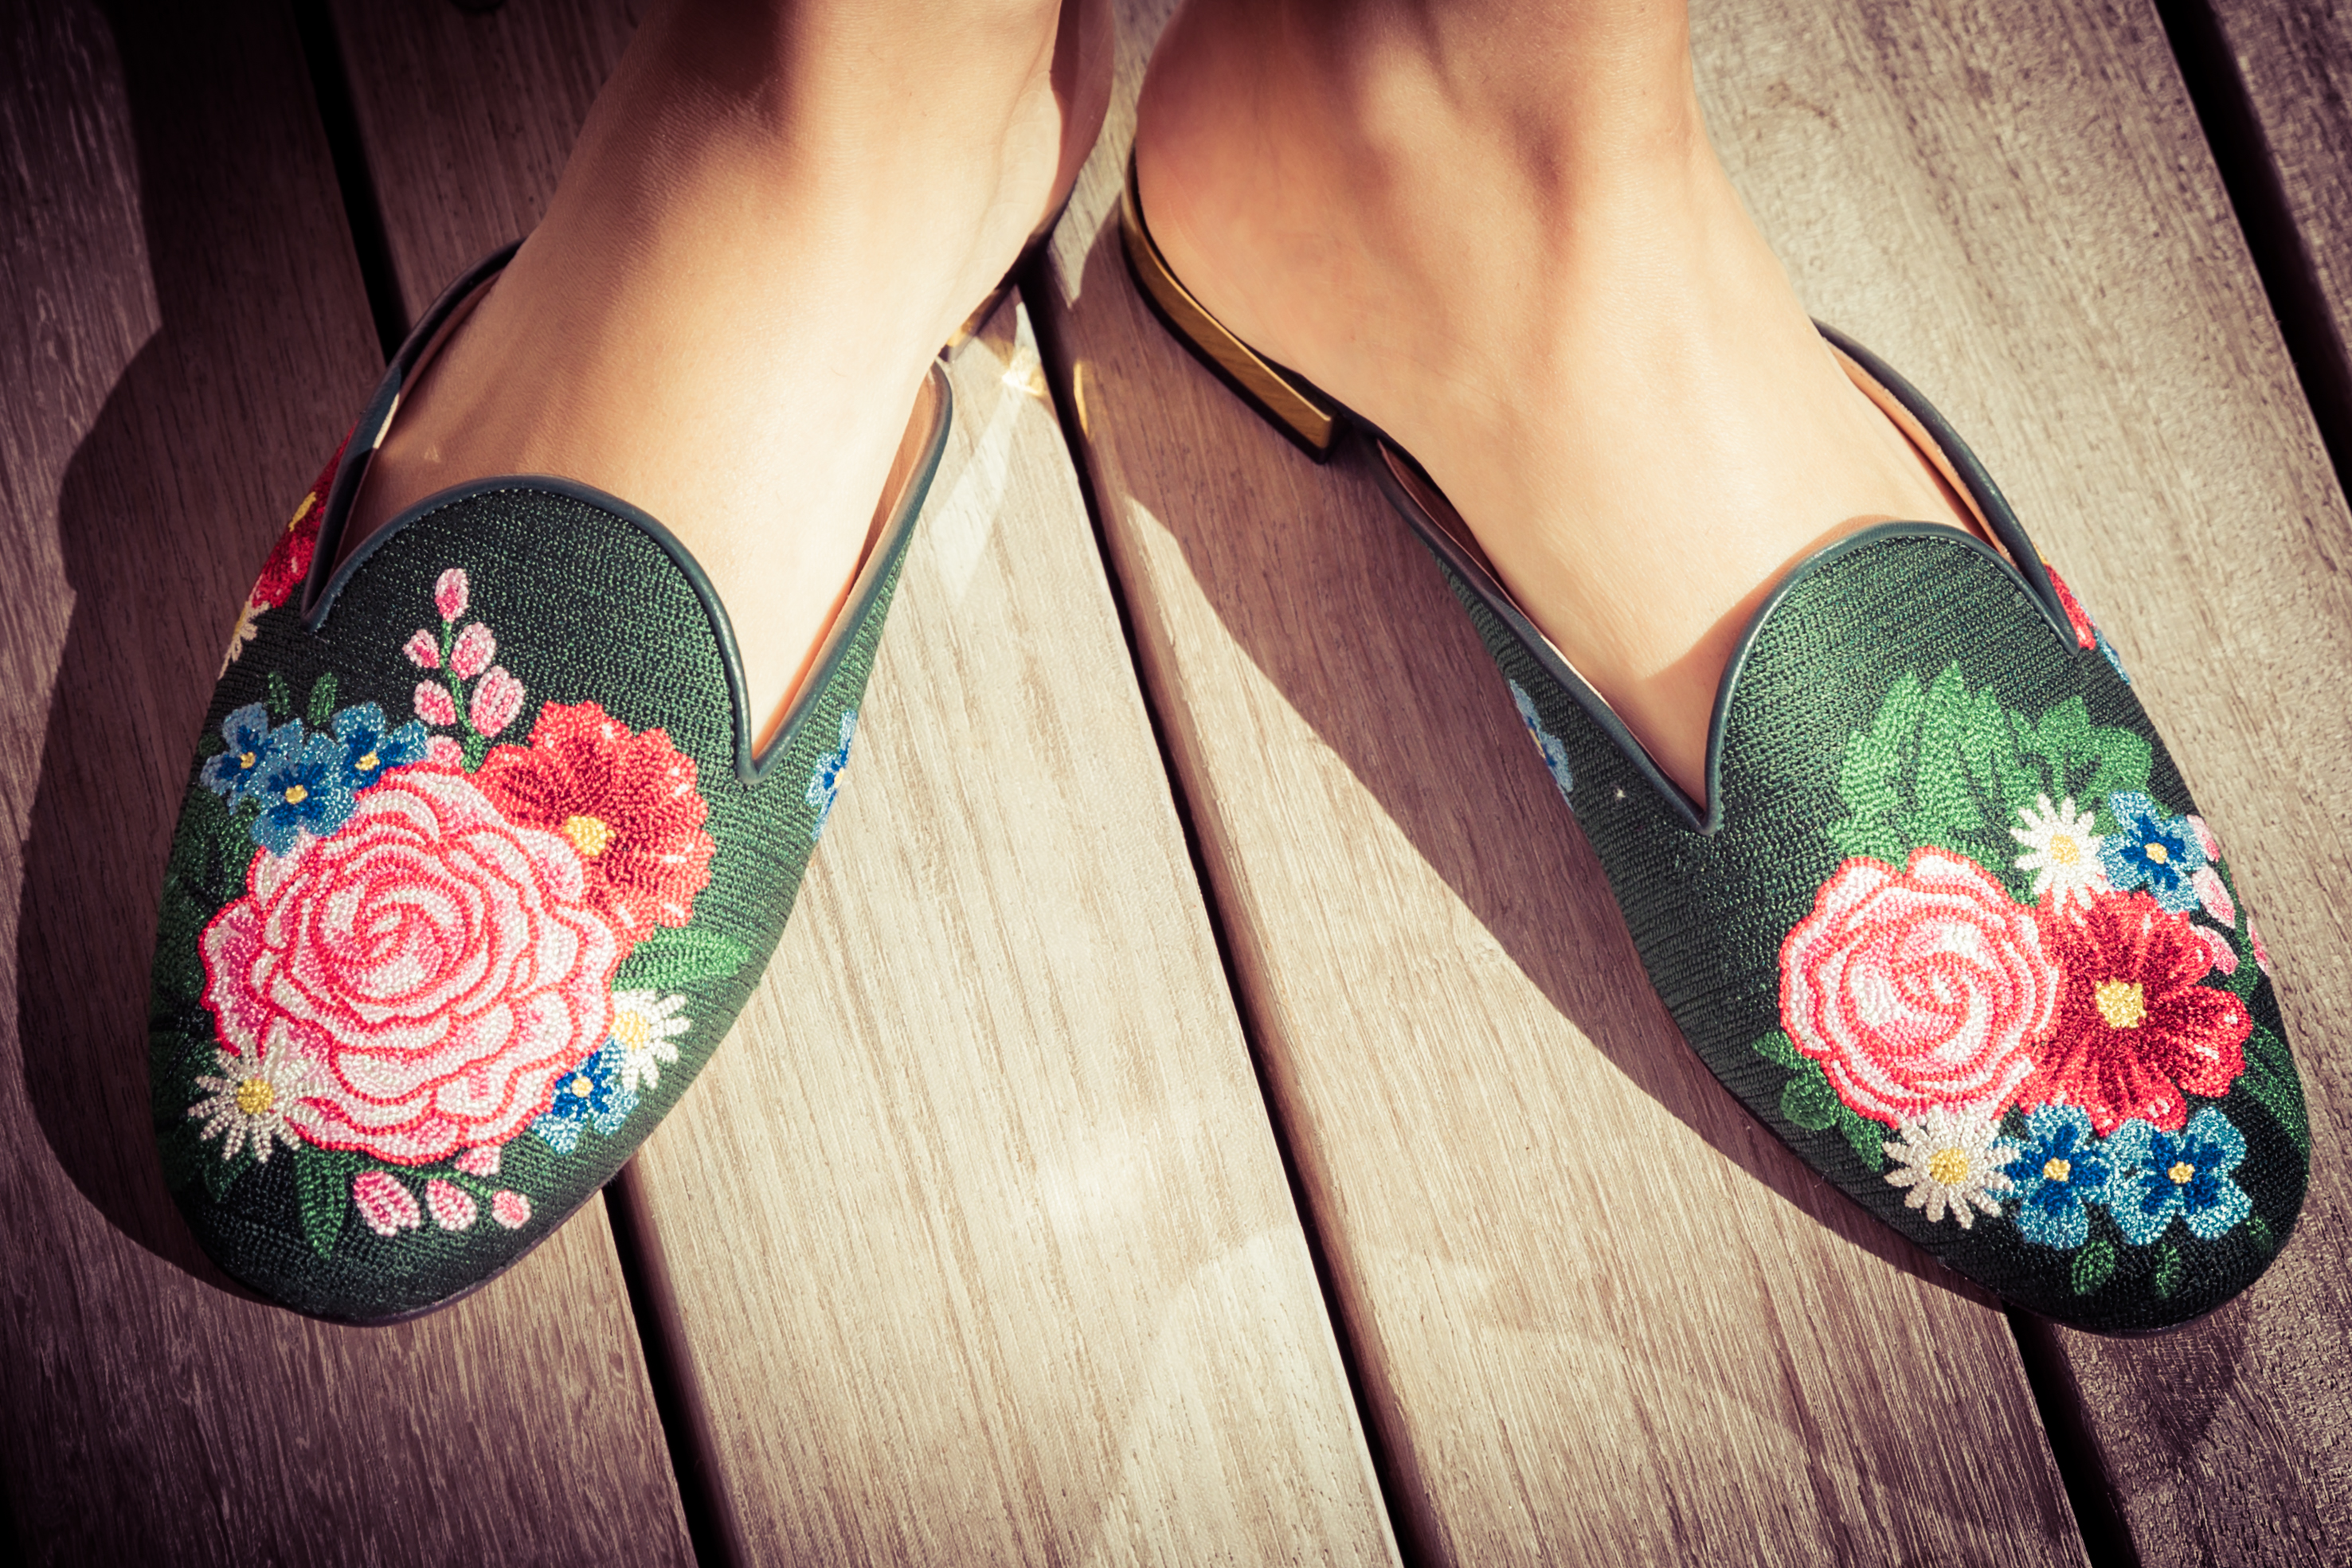 charlotte-olympia-green-shoes-flats-pink-flowers